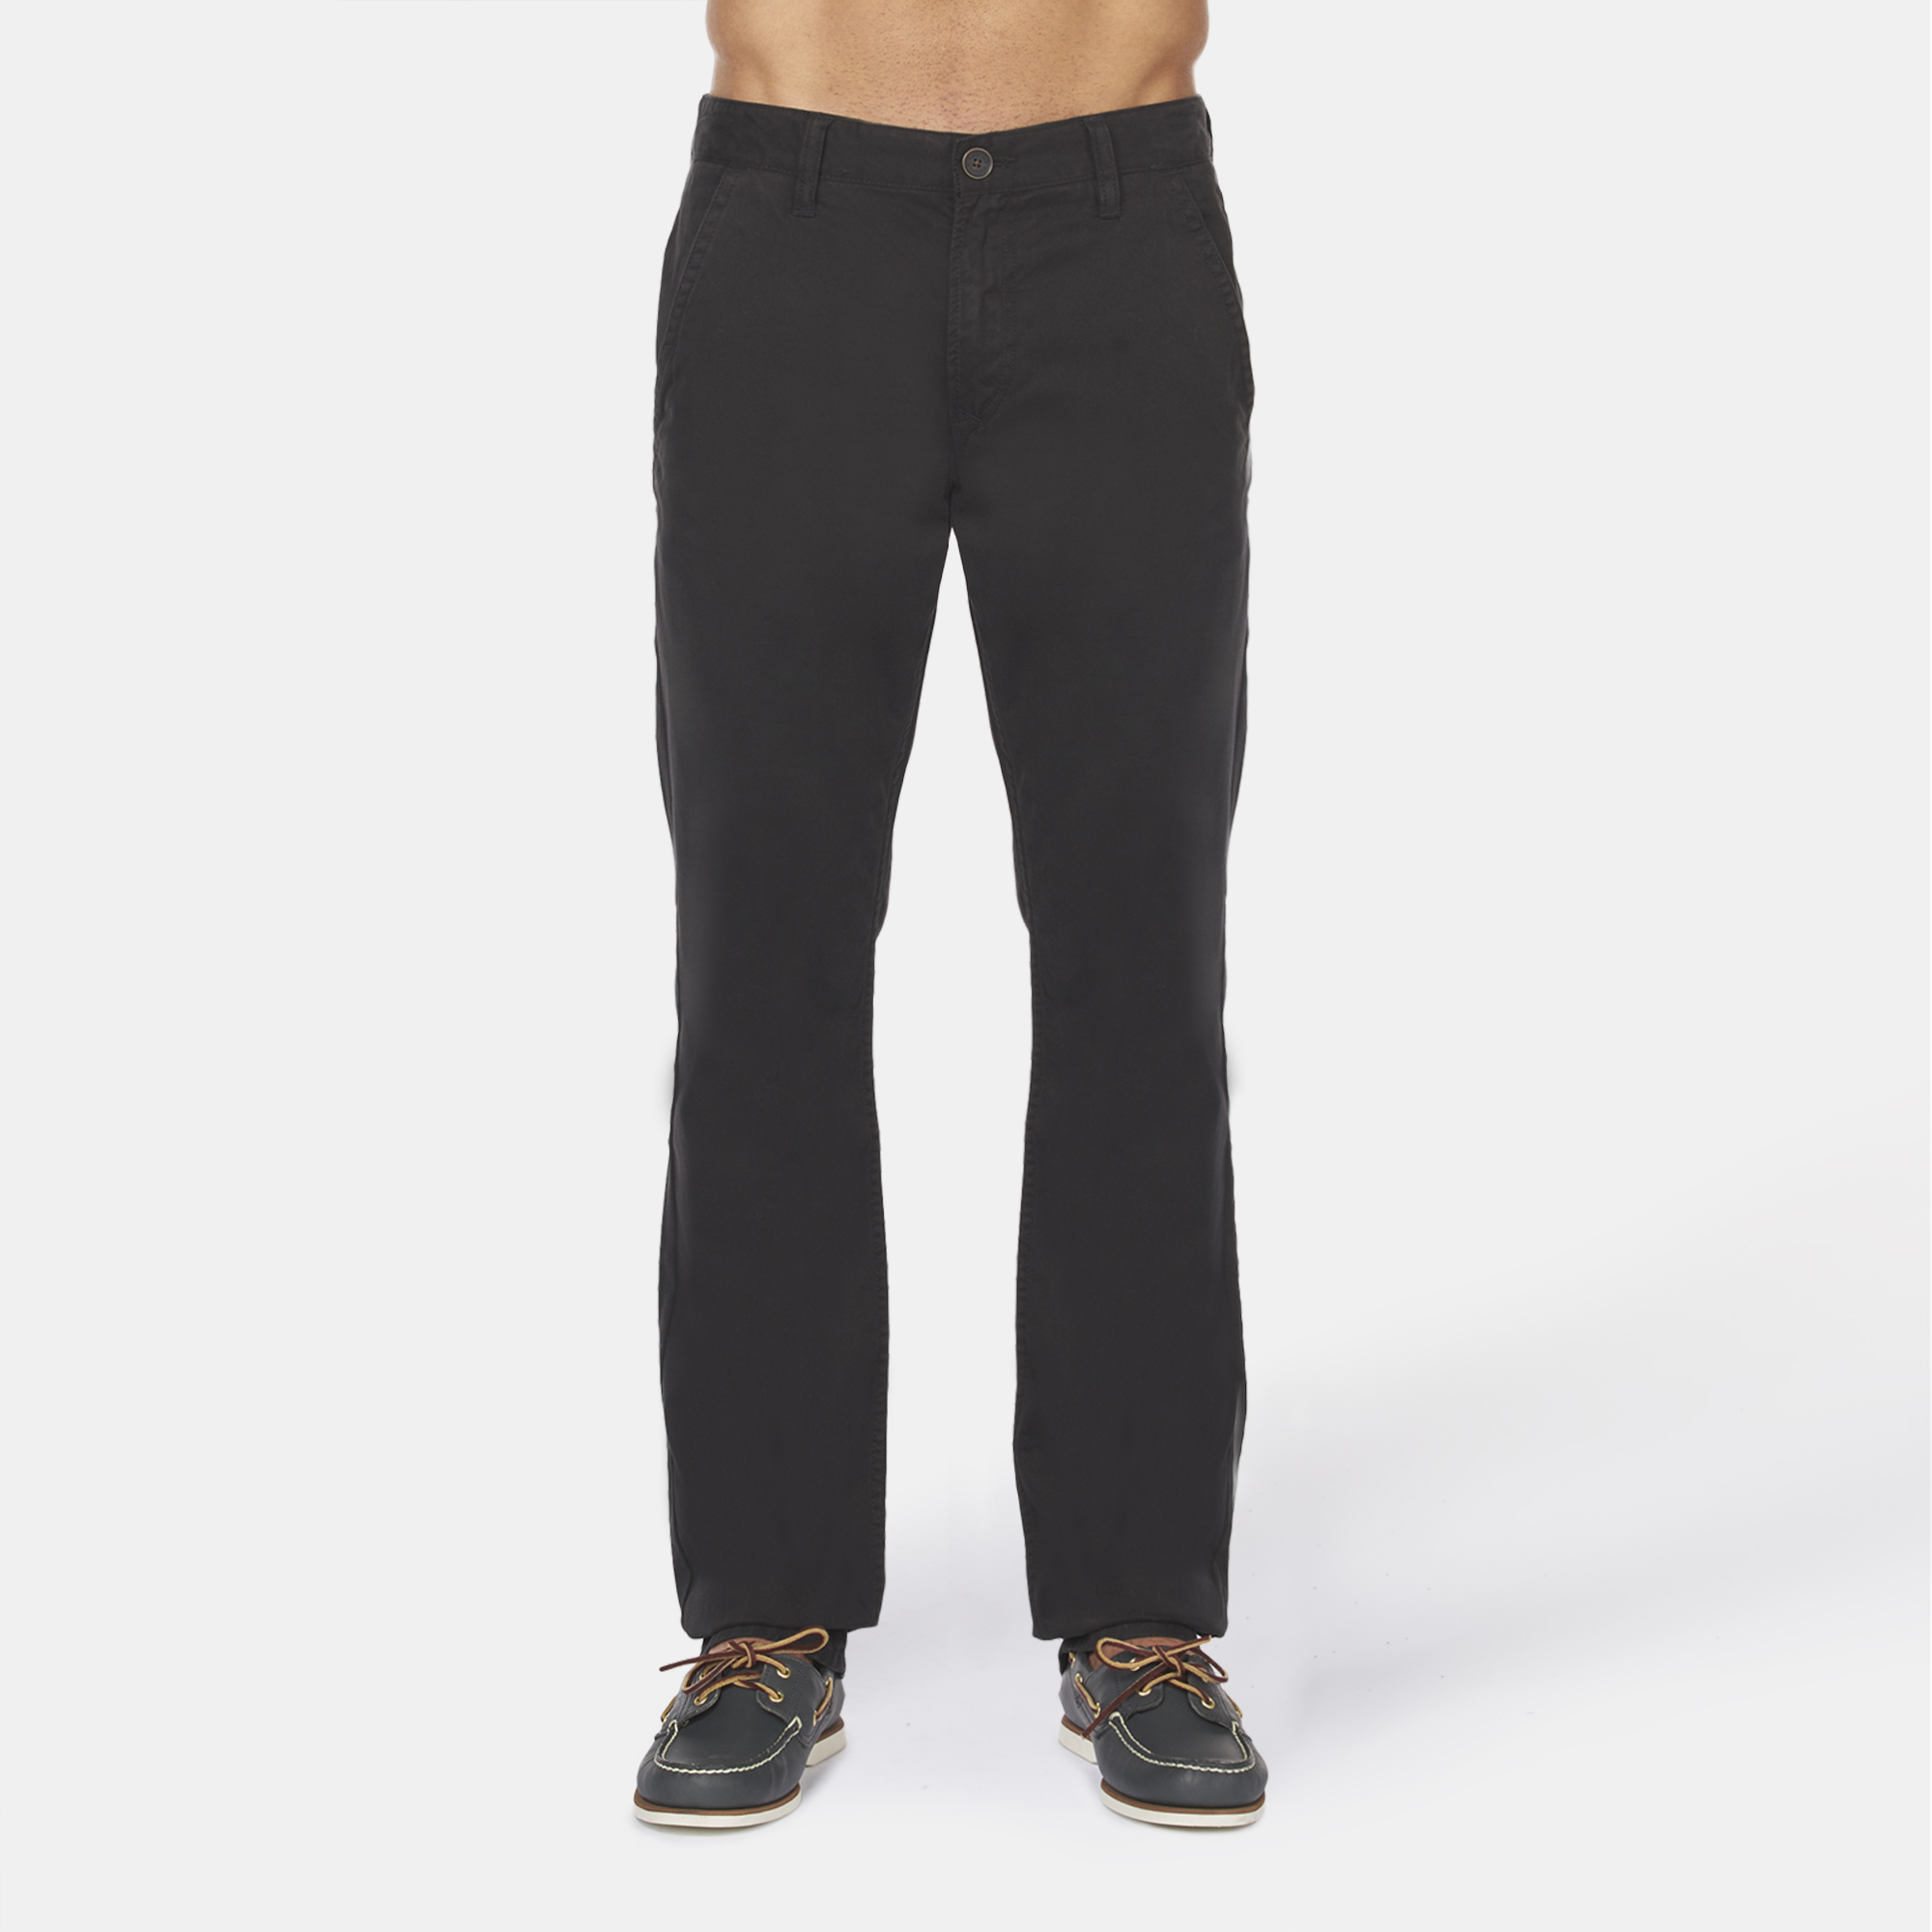 Shop Black Timberland® Squam Lake Twill Chino Pant for Mens